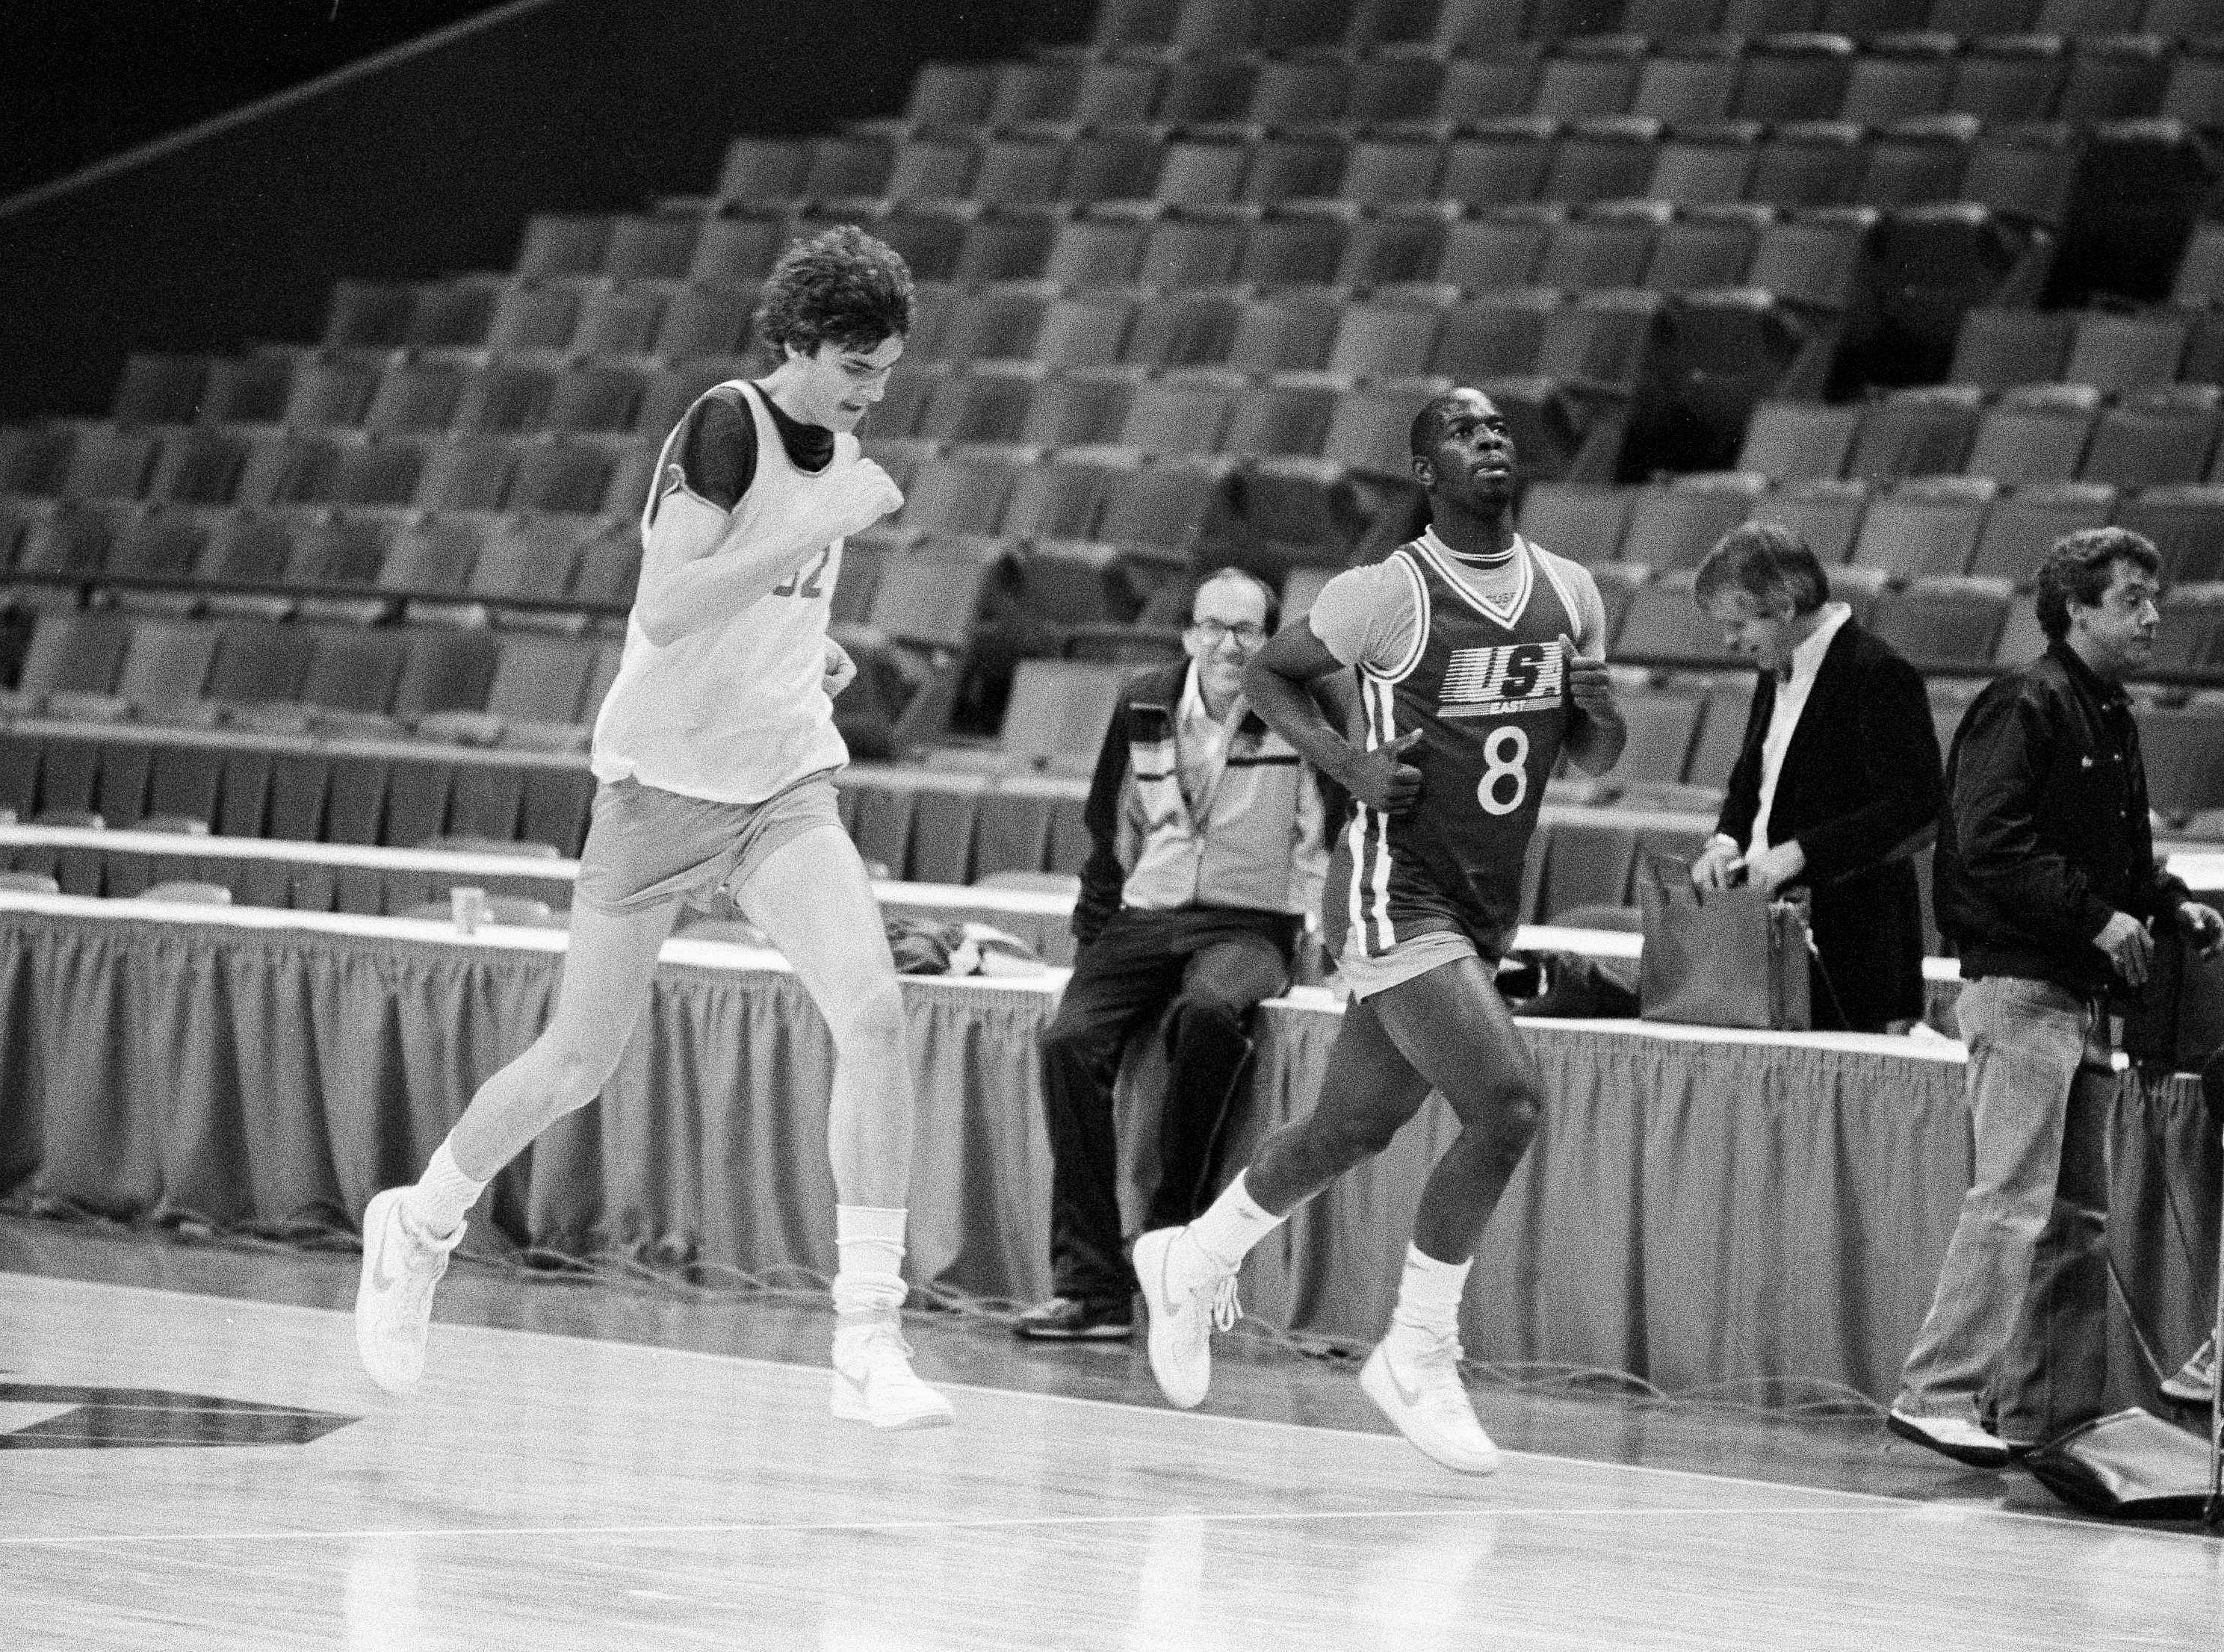 1984: Syracuse basketball coach Jim Boeheim seems pleased as George Papadakos, left, and Dwayne Washington fly past during a workout in Atlanta's Omni, March 22, 1984. (AP Photo/Joe Holloway Jr)